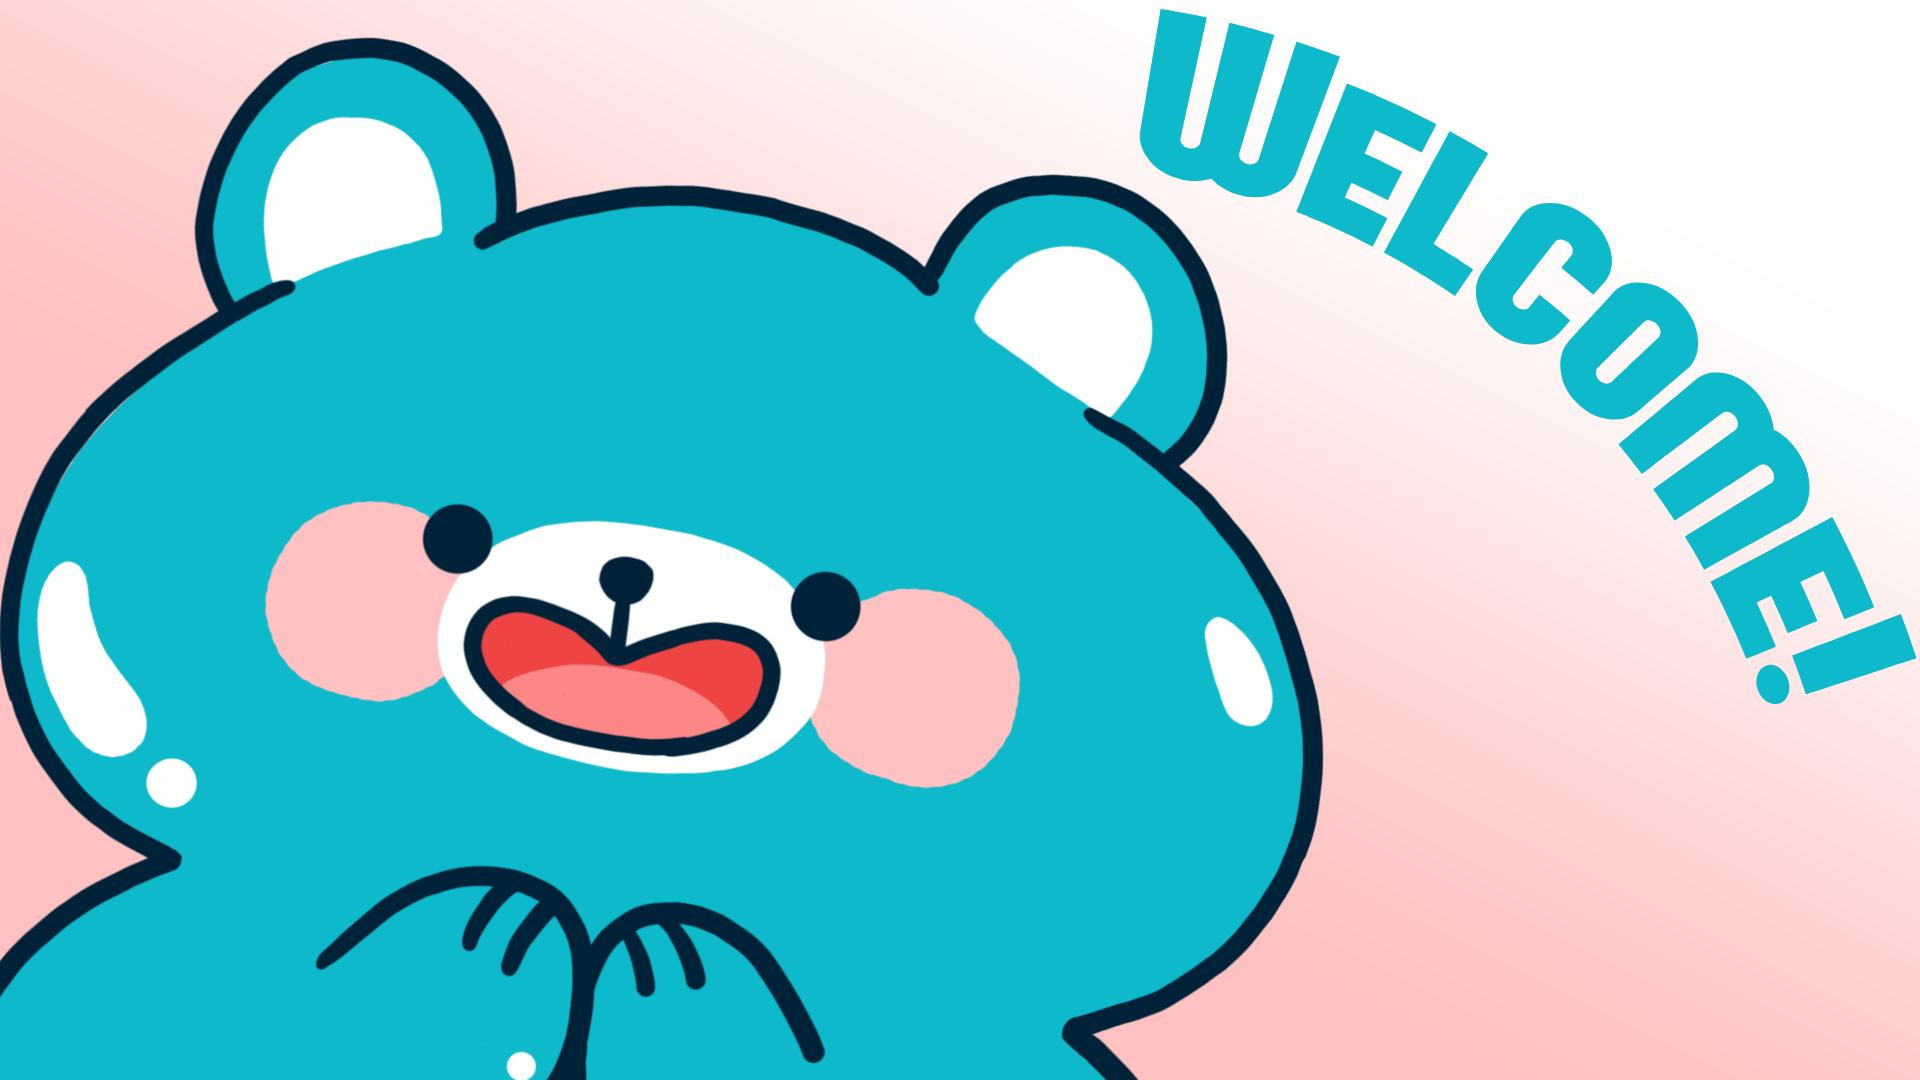 Welcome to Jammy Bear!